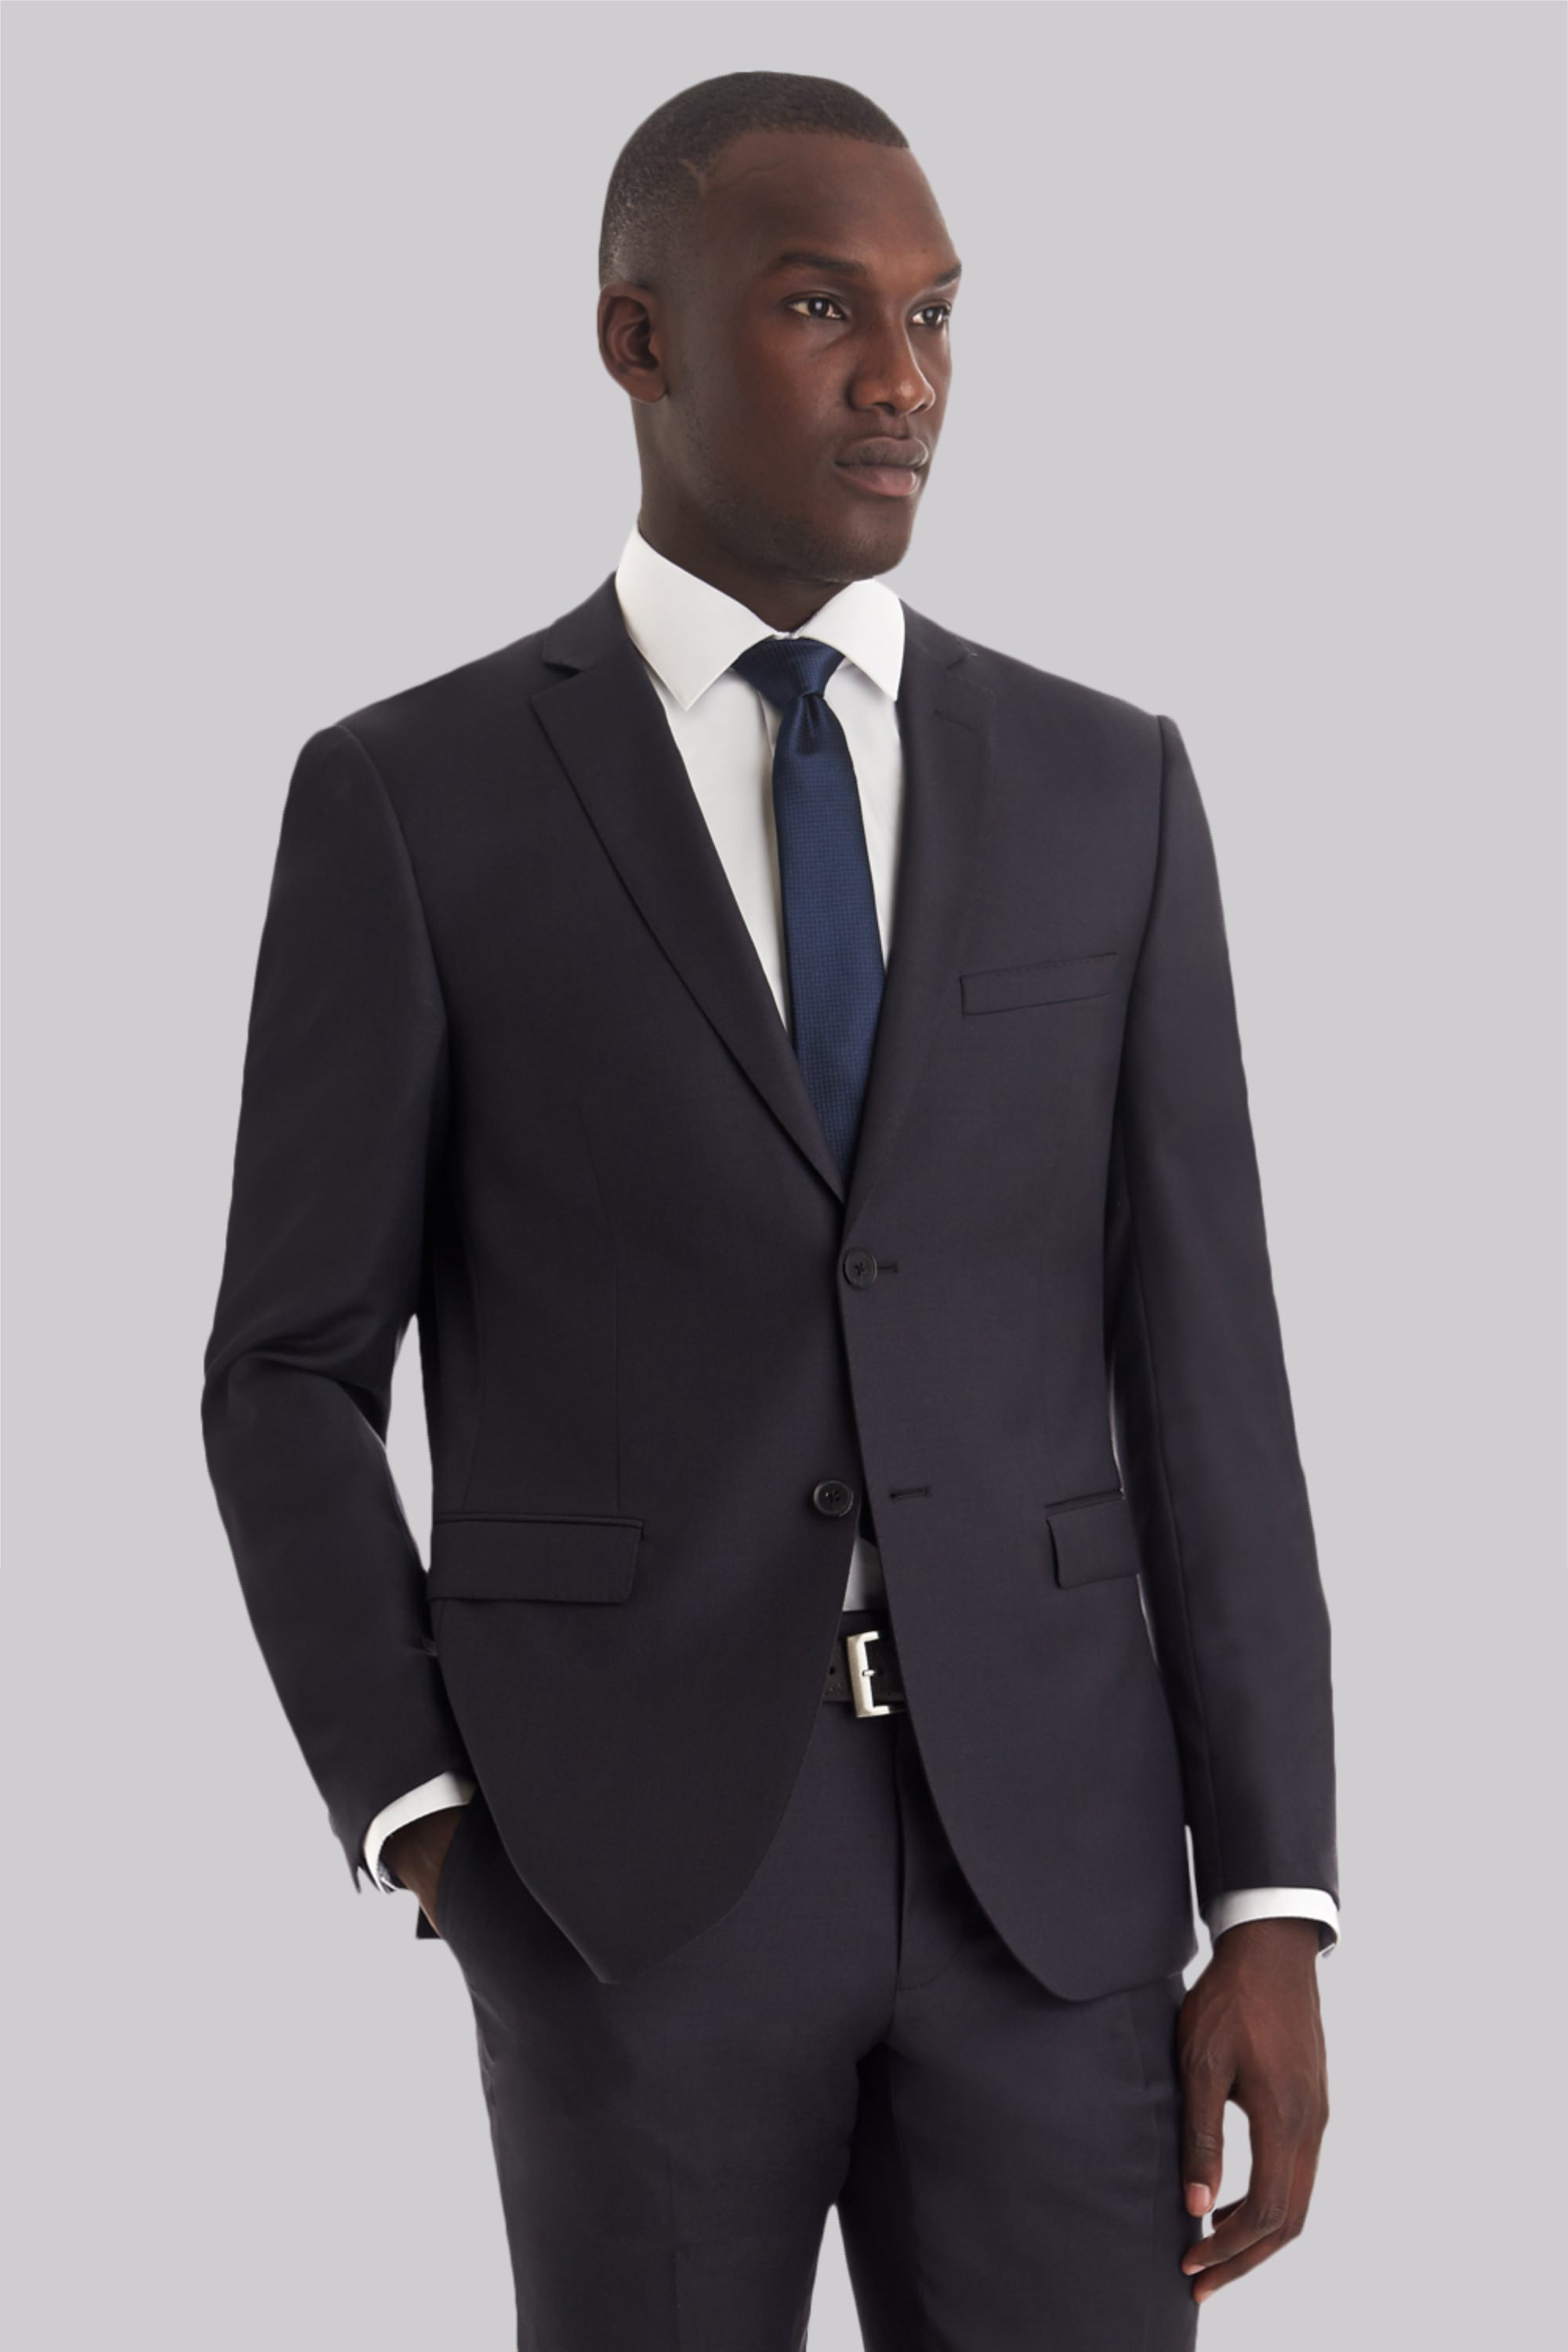 DKNY Mens Slim Fit Slate Grey Suit Single Breasted Two Button Wool